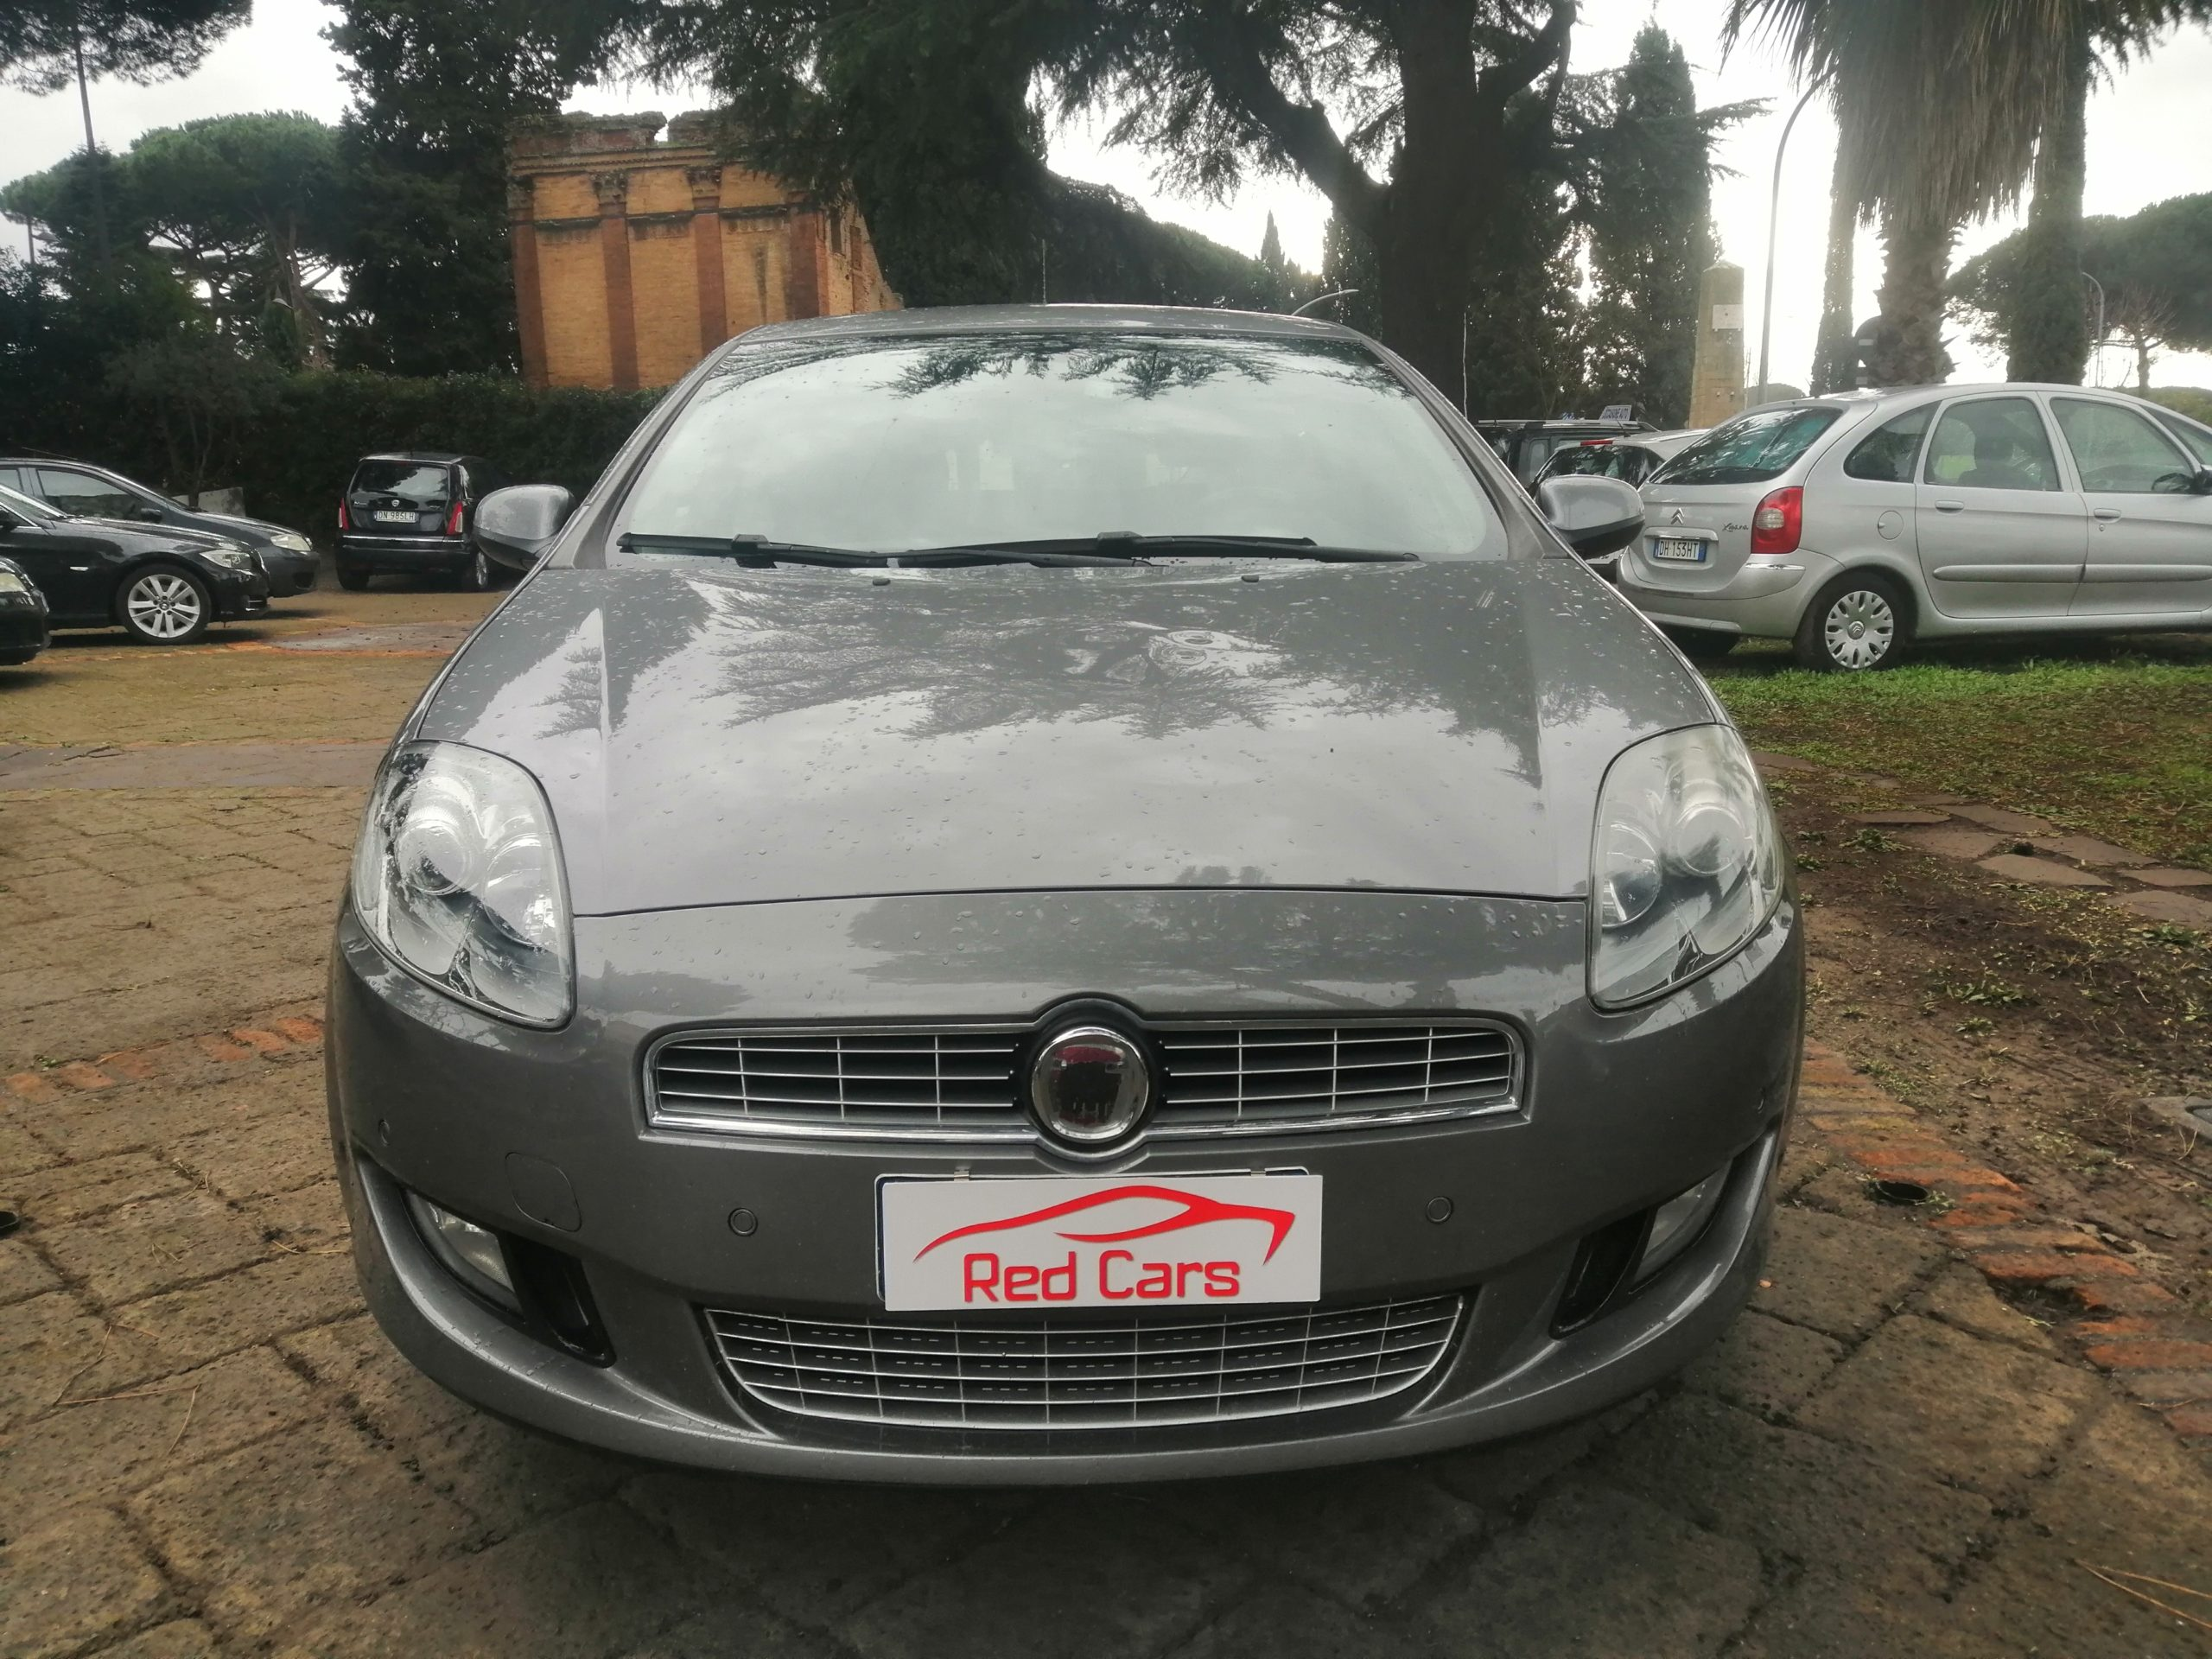 FIAT BRAVO 1.6 MJT EMOTION